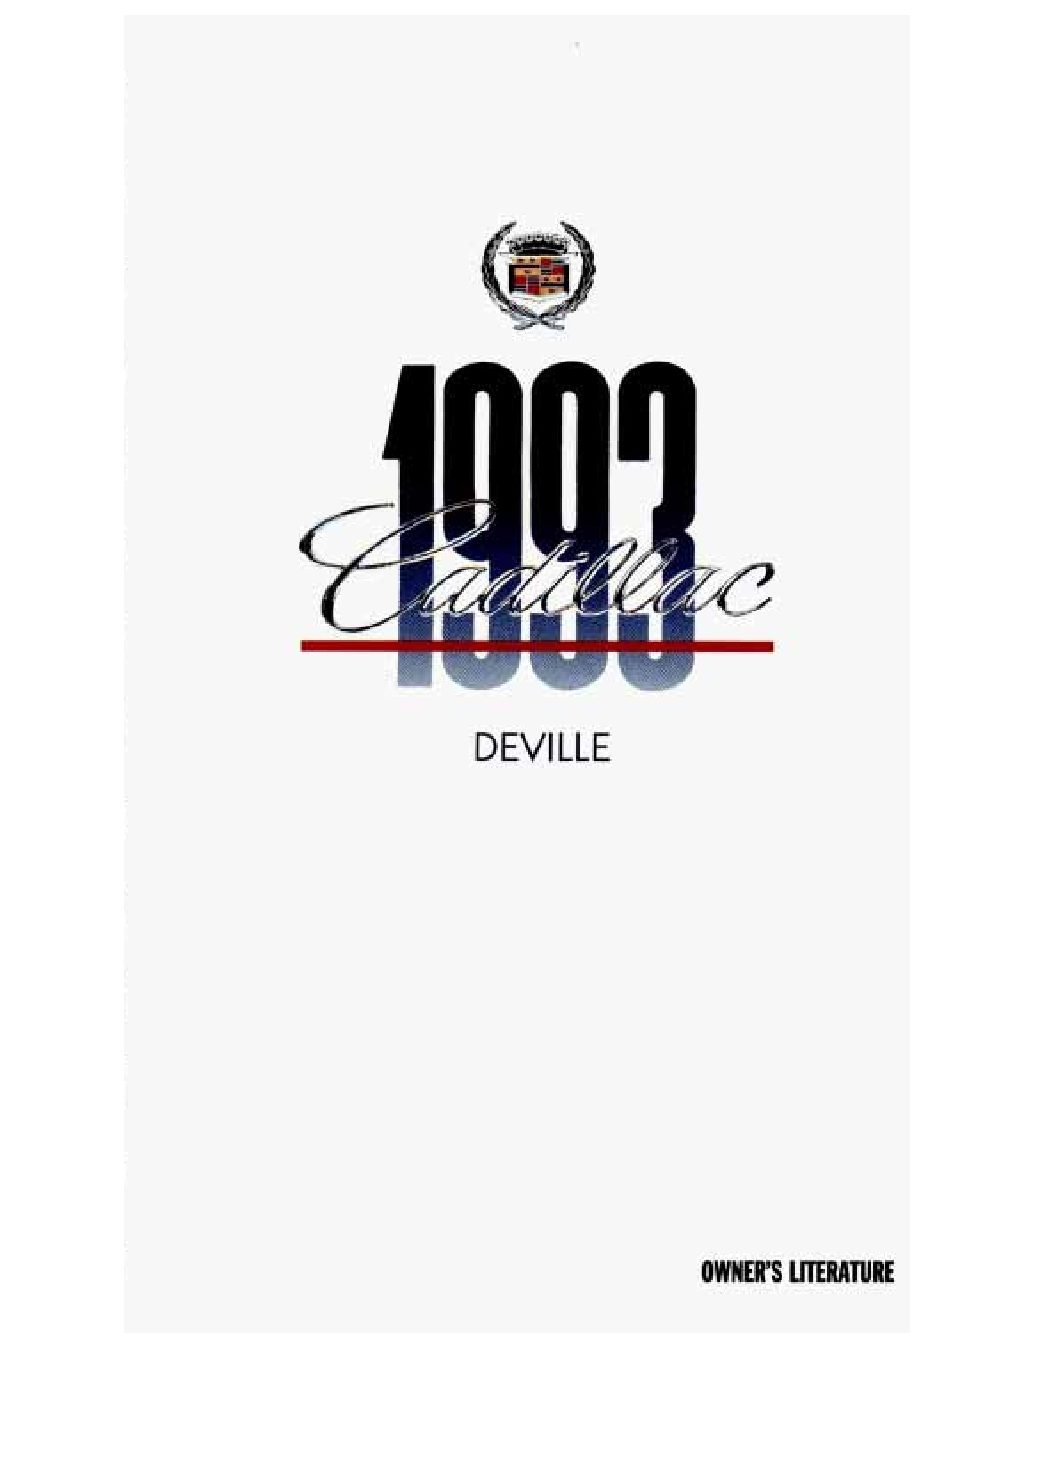 1993 cadillac deville owners manual